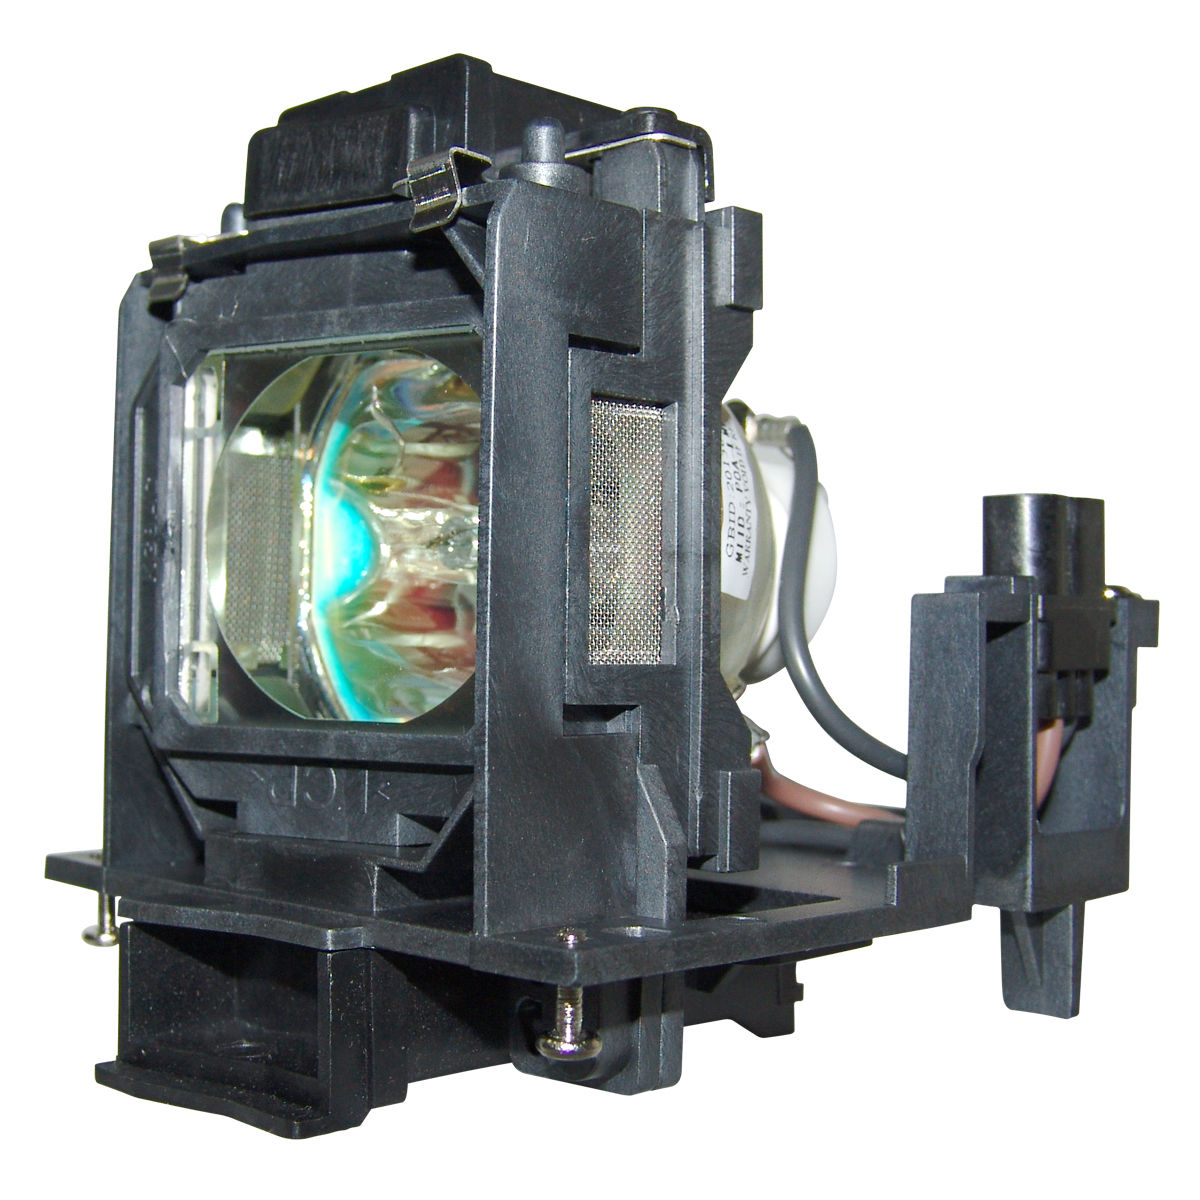 POA-LMP143 LMP143 610-351-3744 for SANYO PDG-DWL2500 /PDG-DXL2000/PCL-DWL2500 Projector Bulb Lamp With Housing